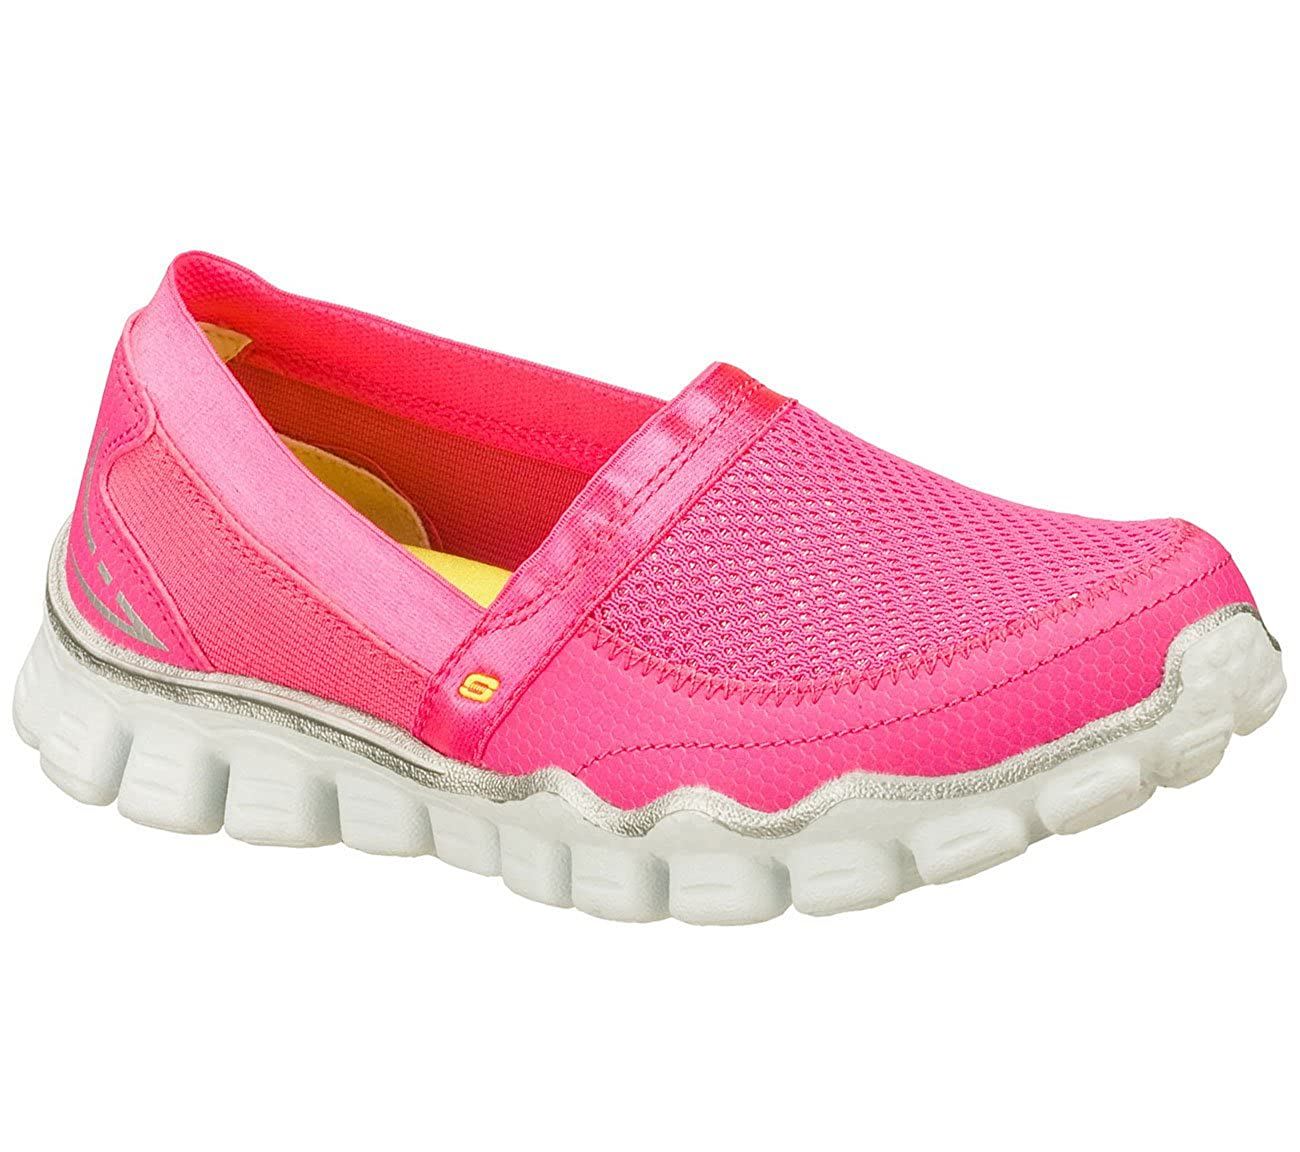 Skechers Skech Flex Ii glitzy Glamour, Girls' Loafers